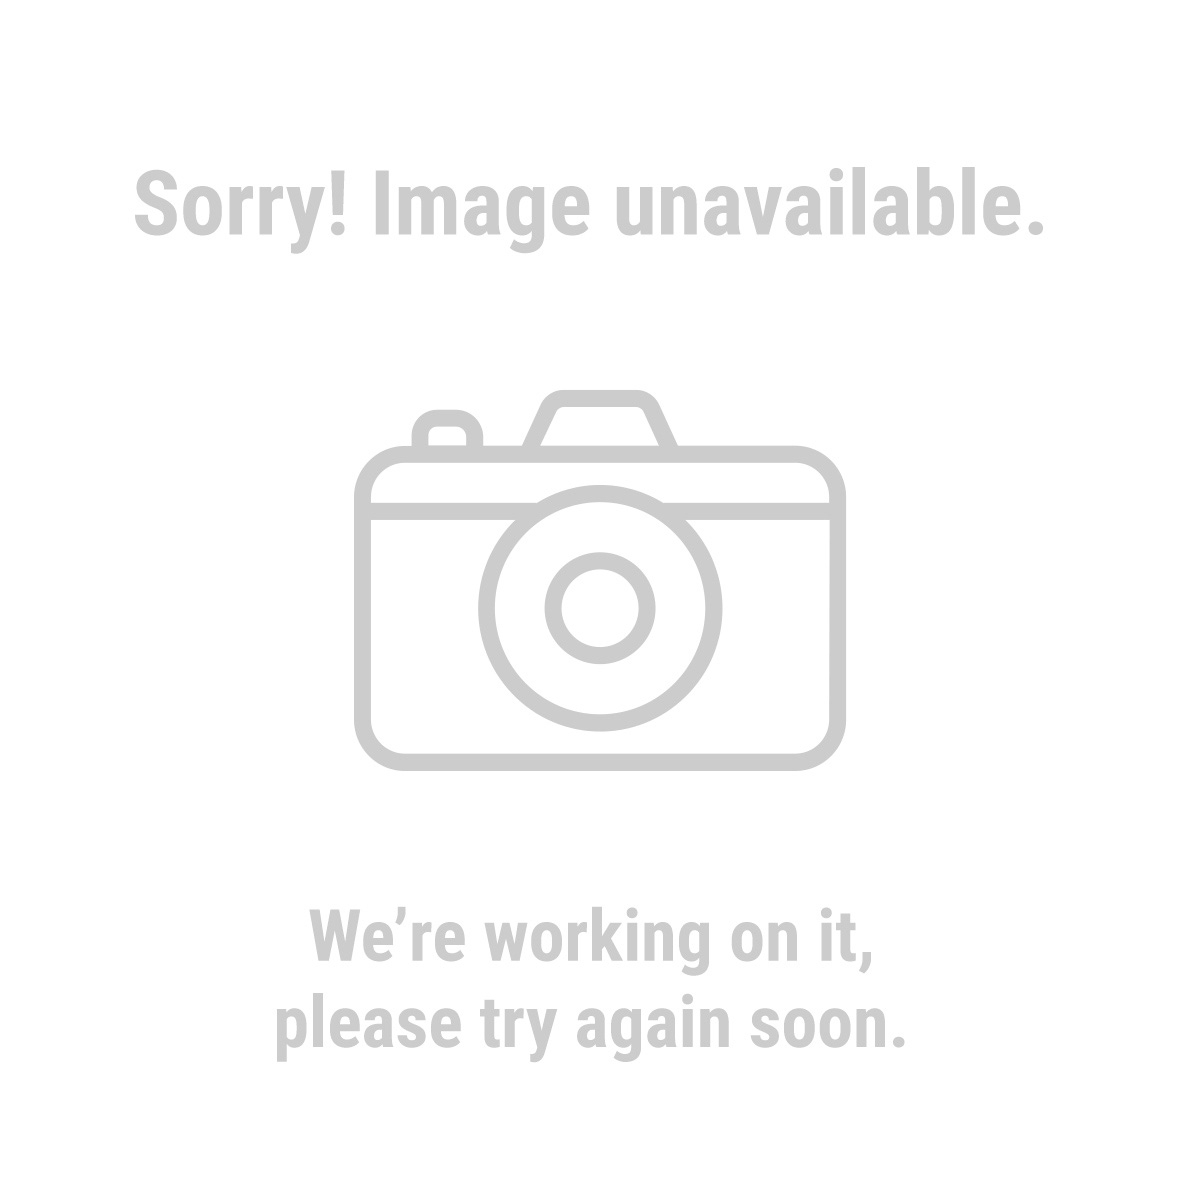 "Haul-Master 41475 10"" Pneumatic Tire with Gold Hub"